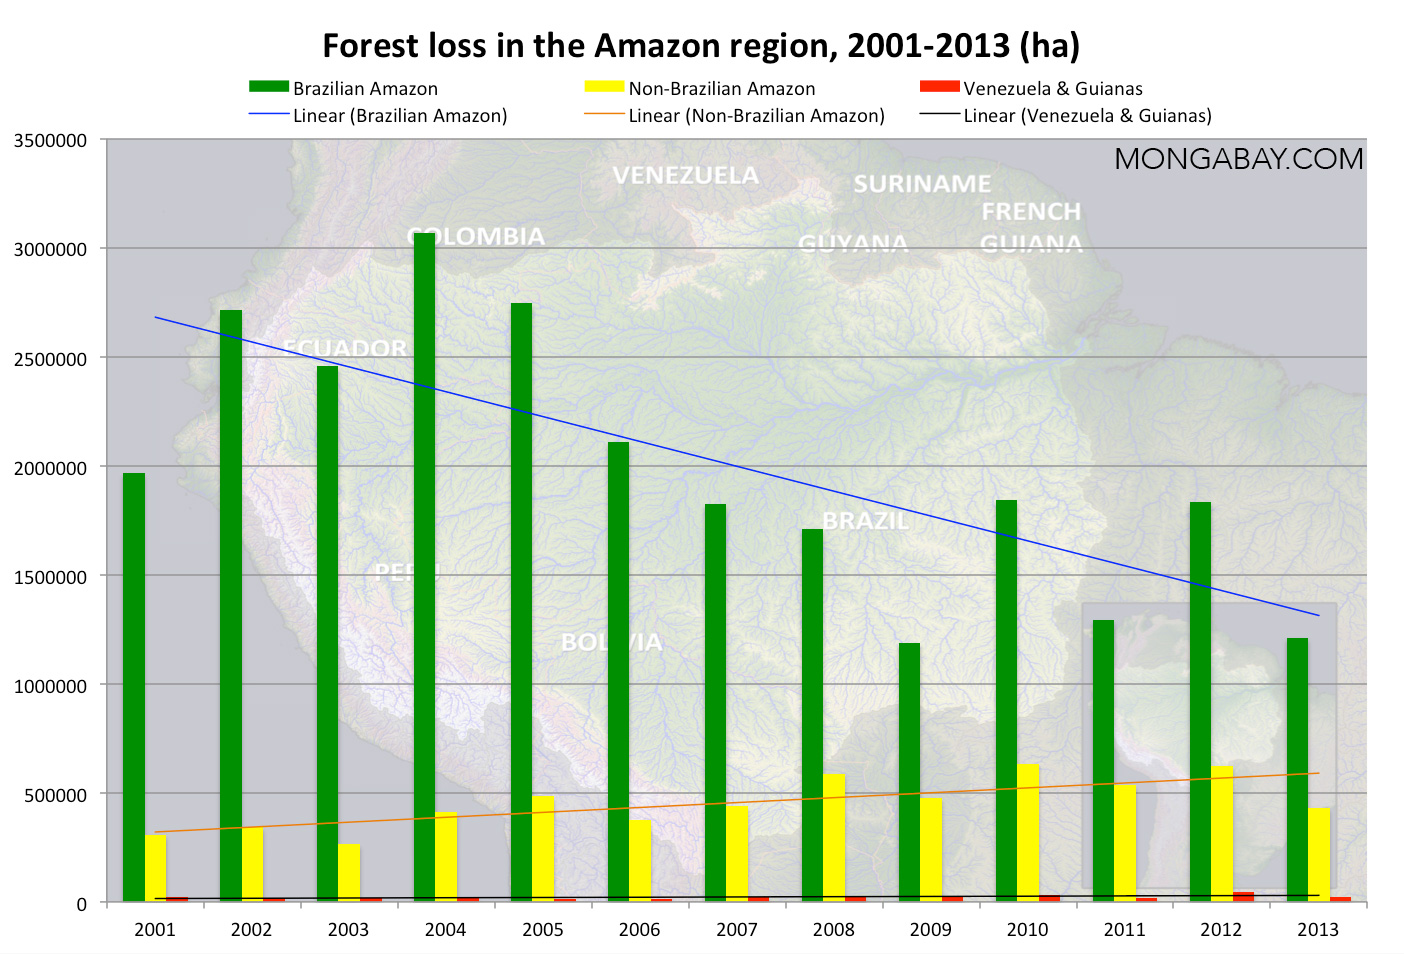 What S The Current Deforestation Rate In The Amazon